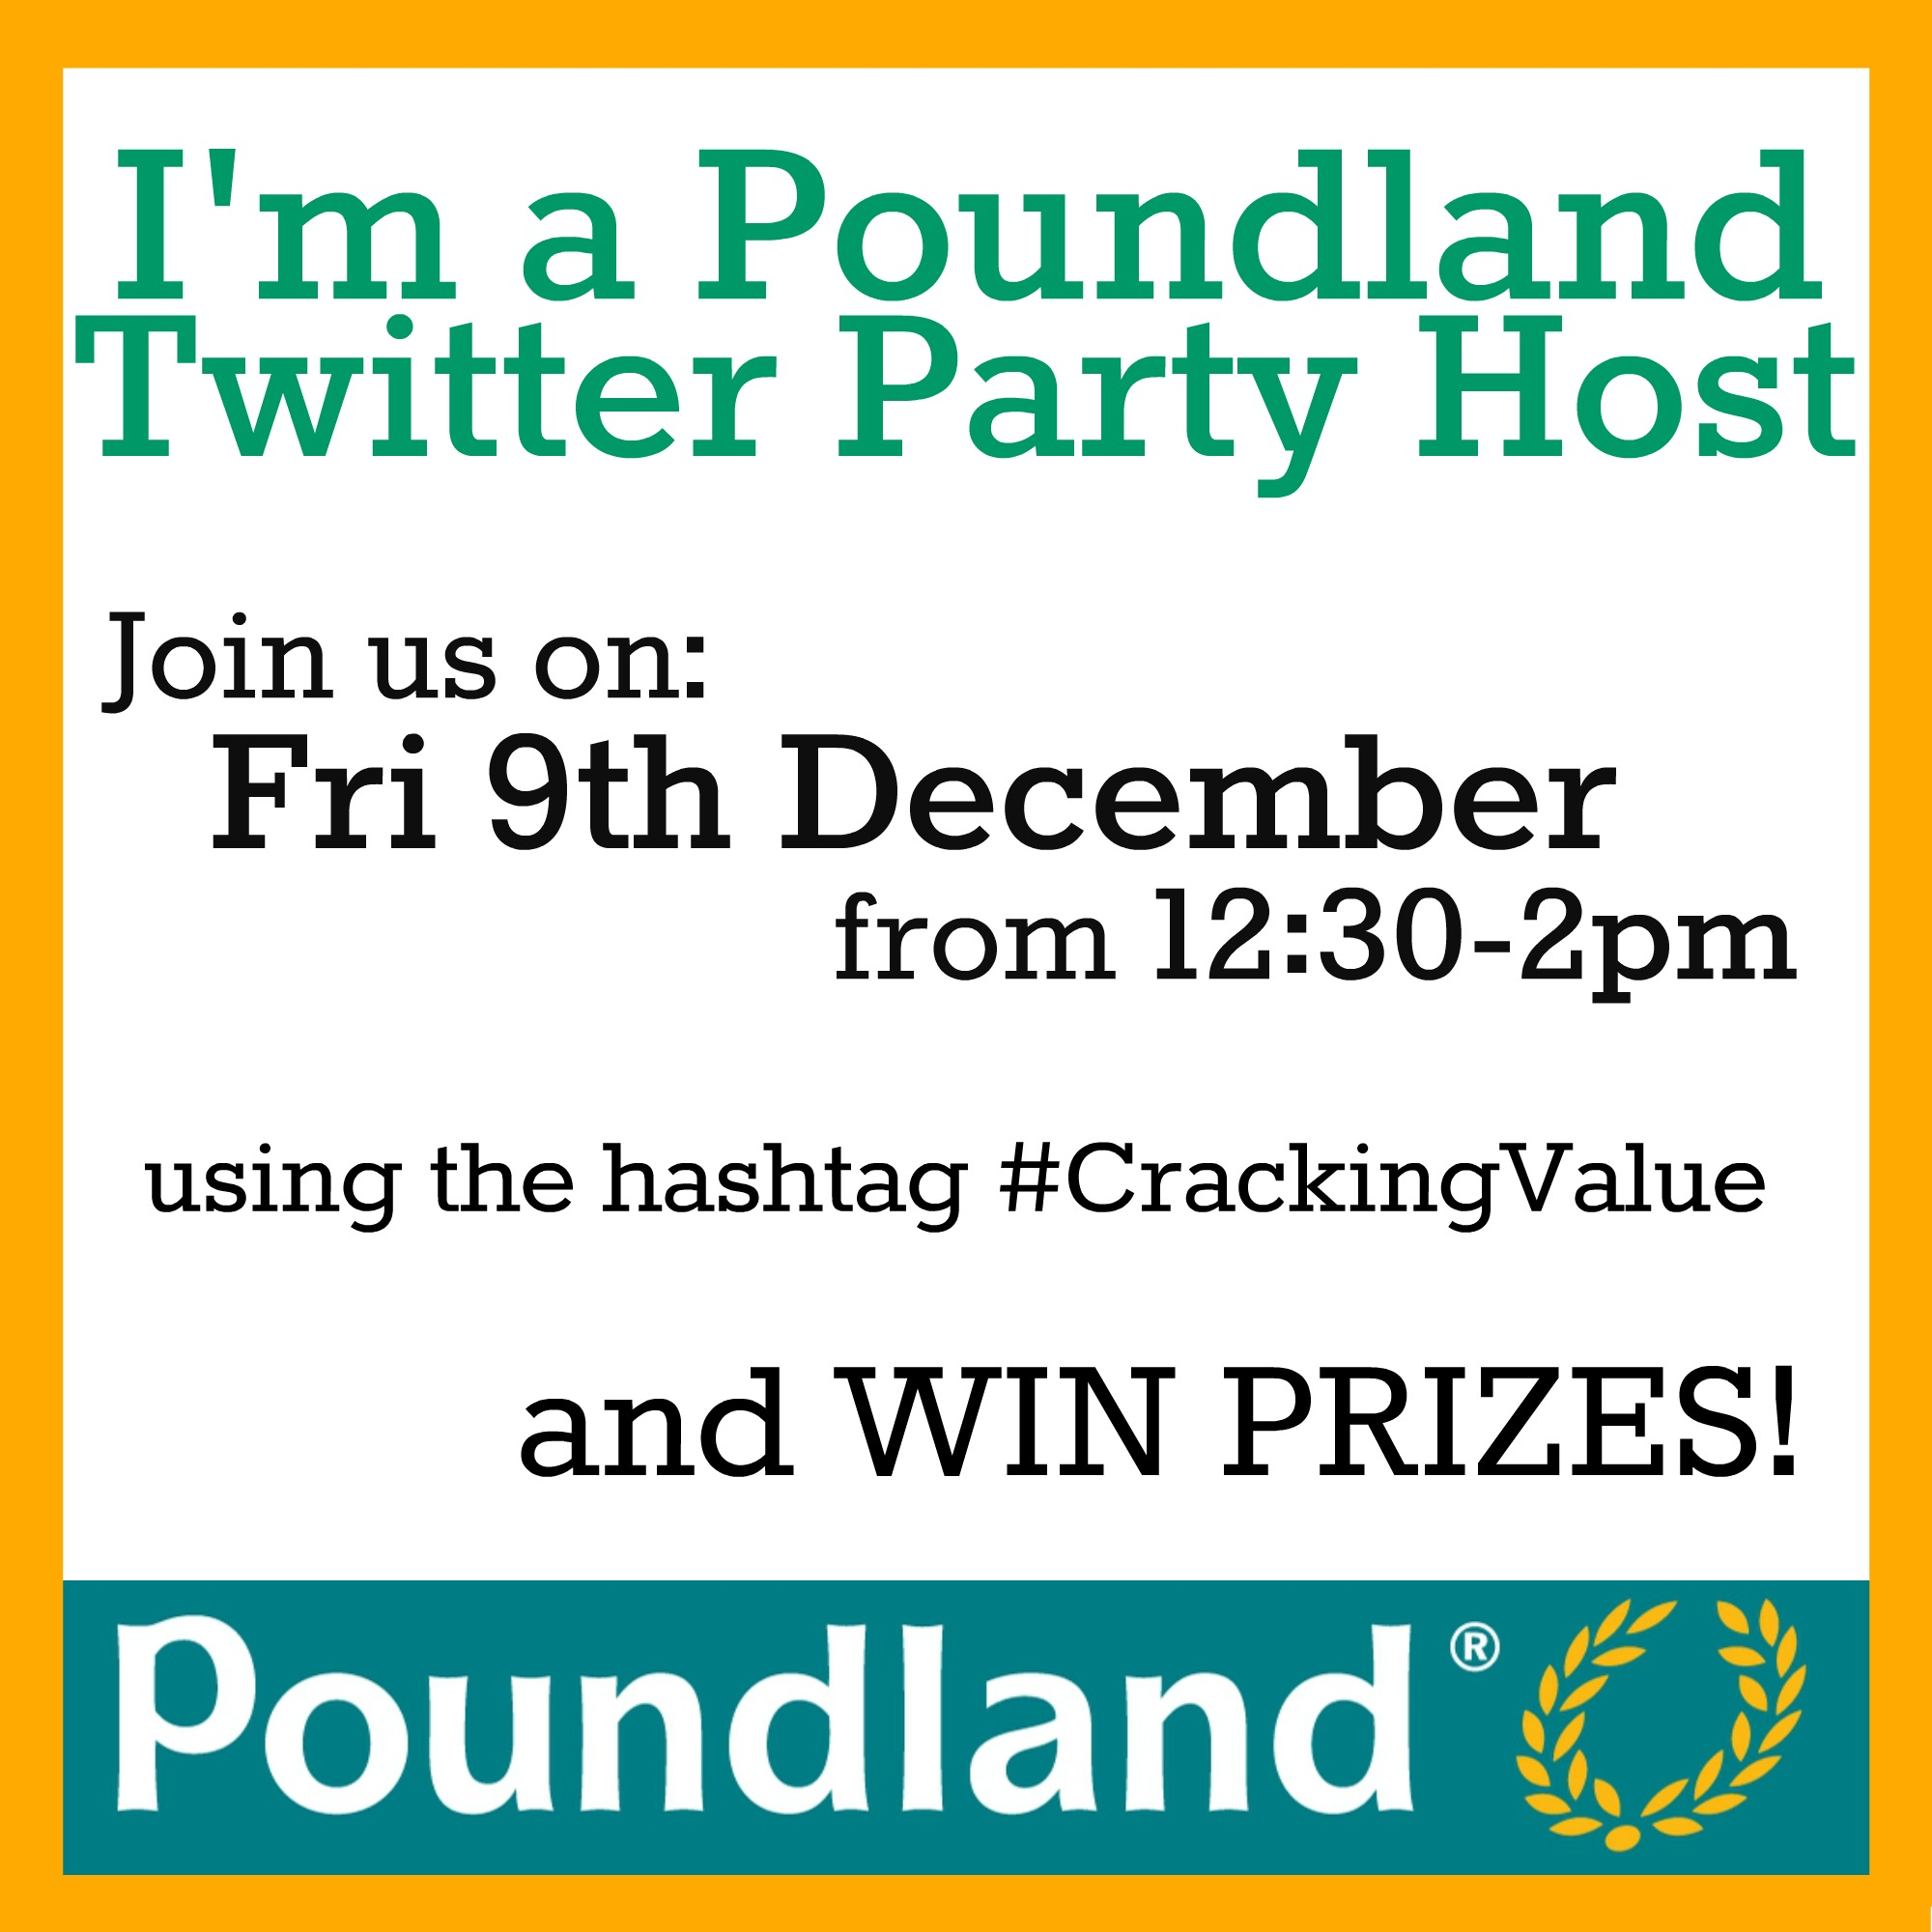 It's #CrackingValue At Poundland This Christmas A Festive